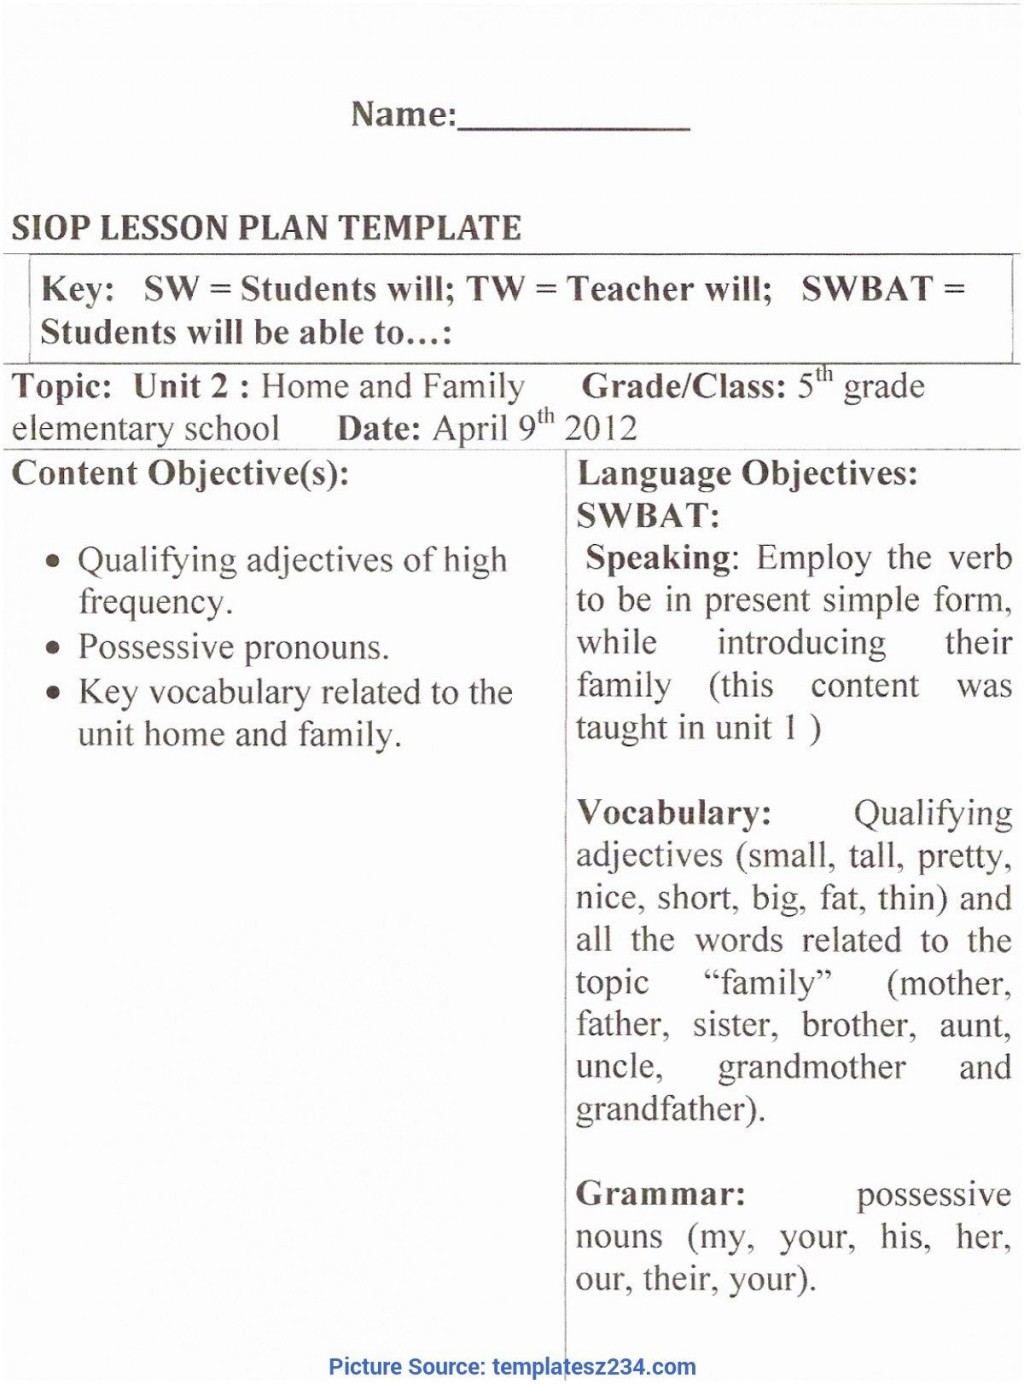 009 Impressive Siop Lesson Plan Template 1 Example Photo Large